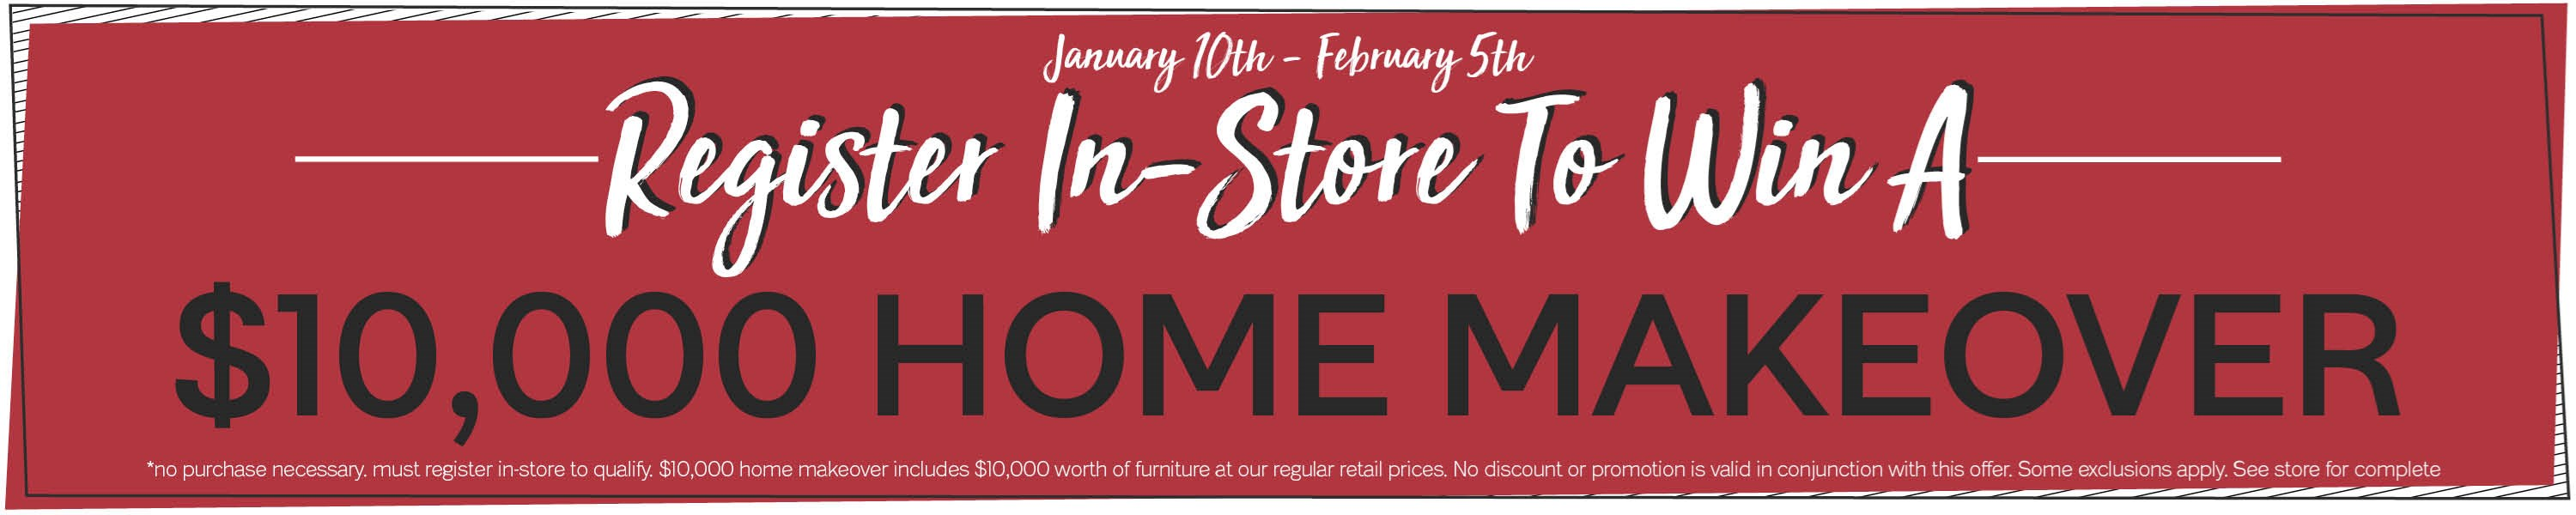 Furniture & ApplianceMart Winter Room Sale